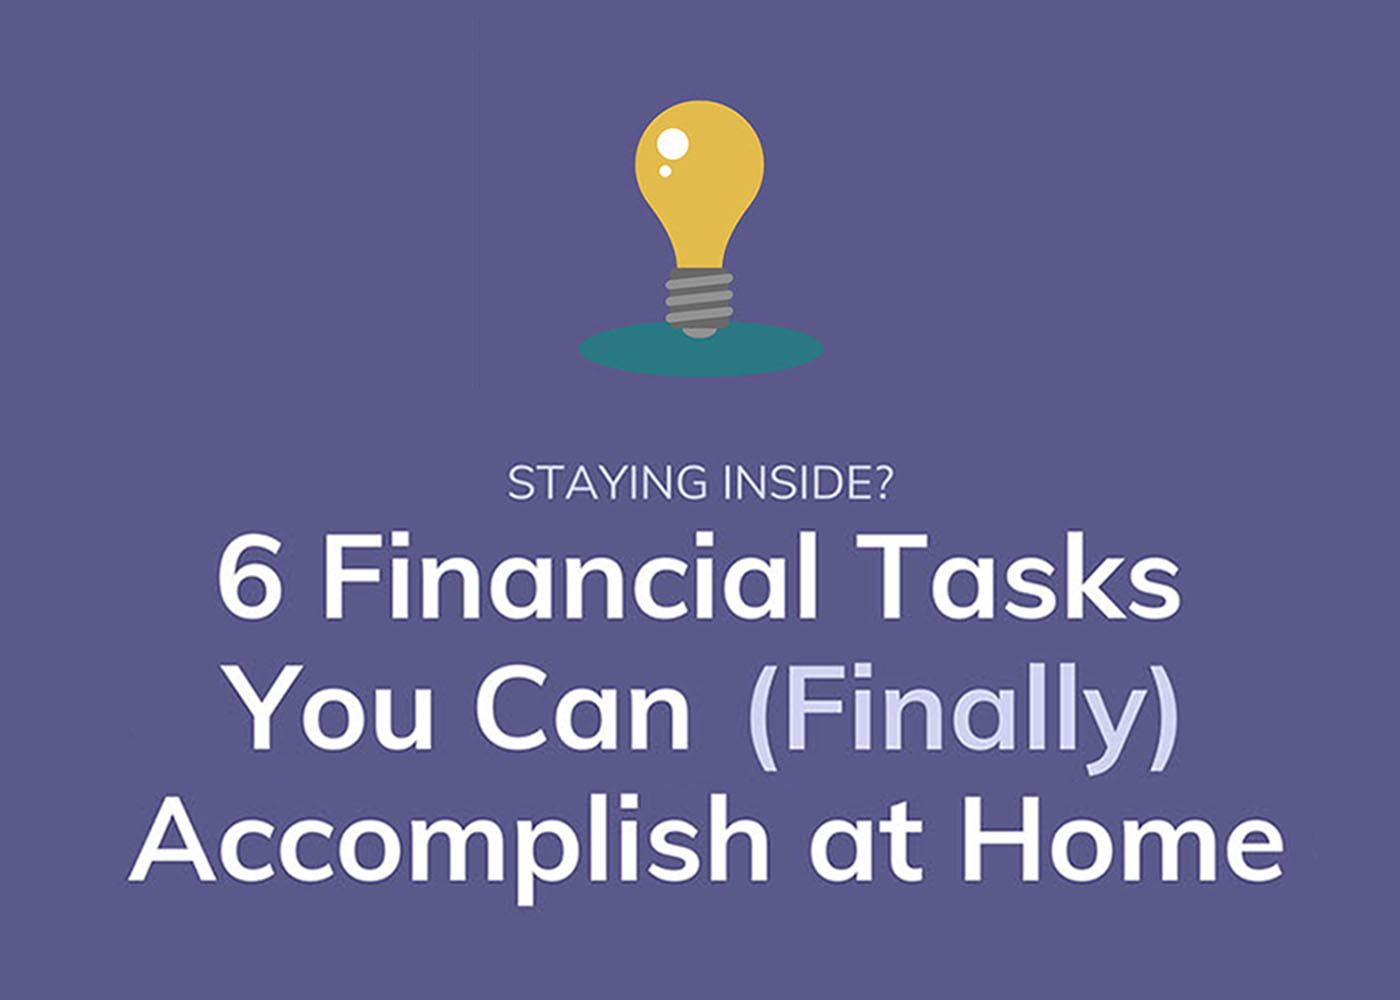 [Infographic] Staying Inside? 6 Financial Tasks You Can (Finally) Accomplish at Home Thumbnail